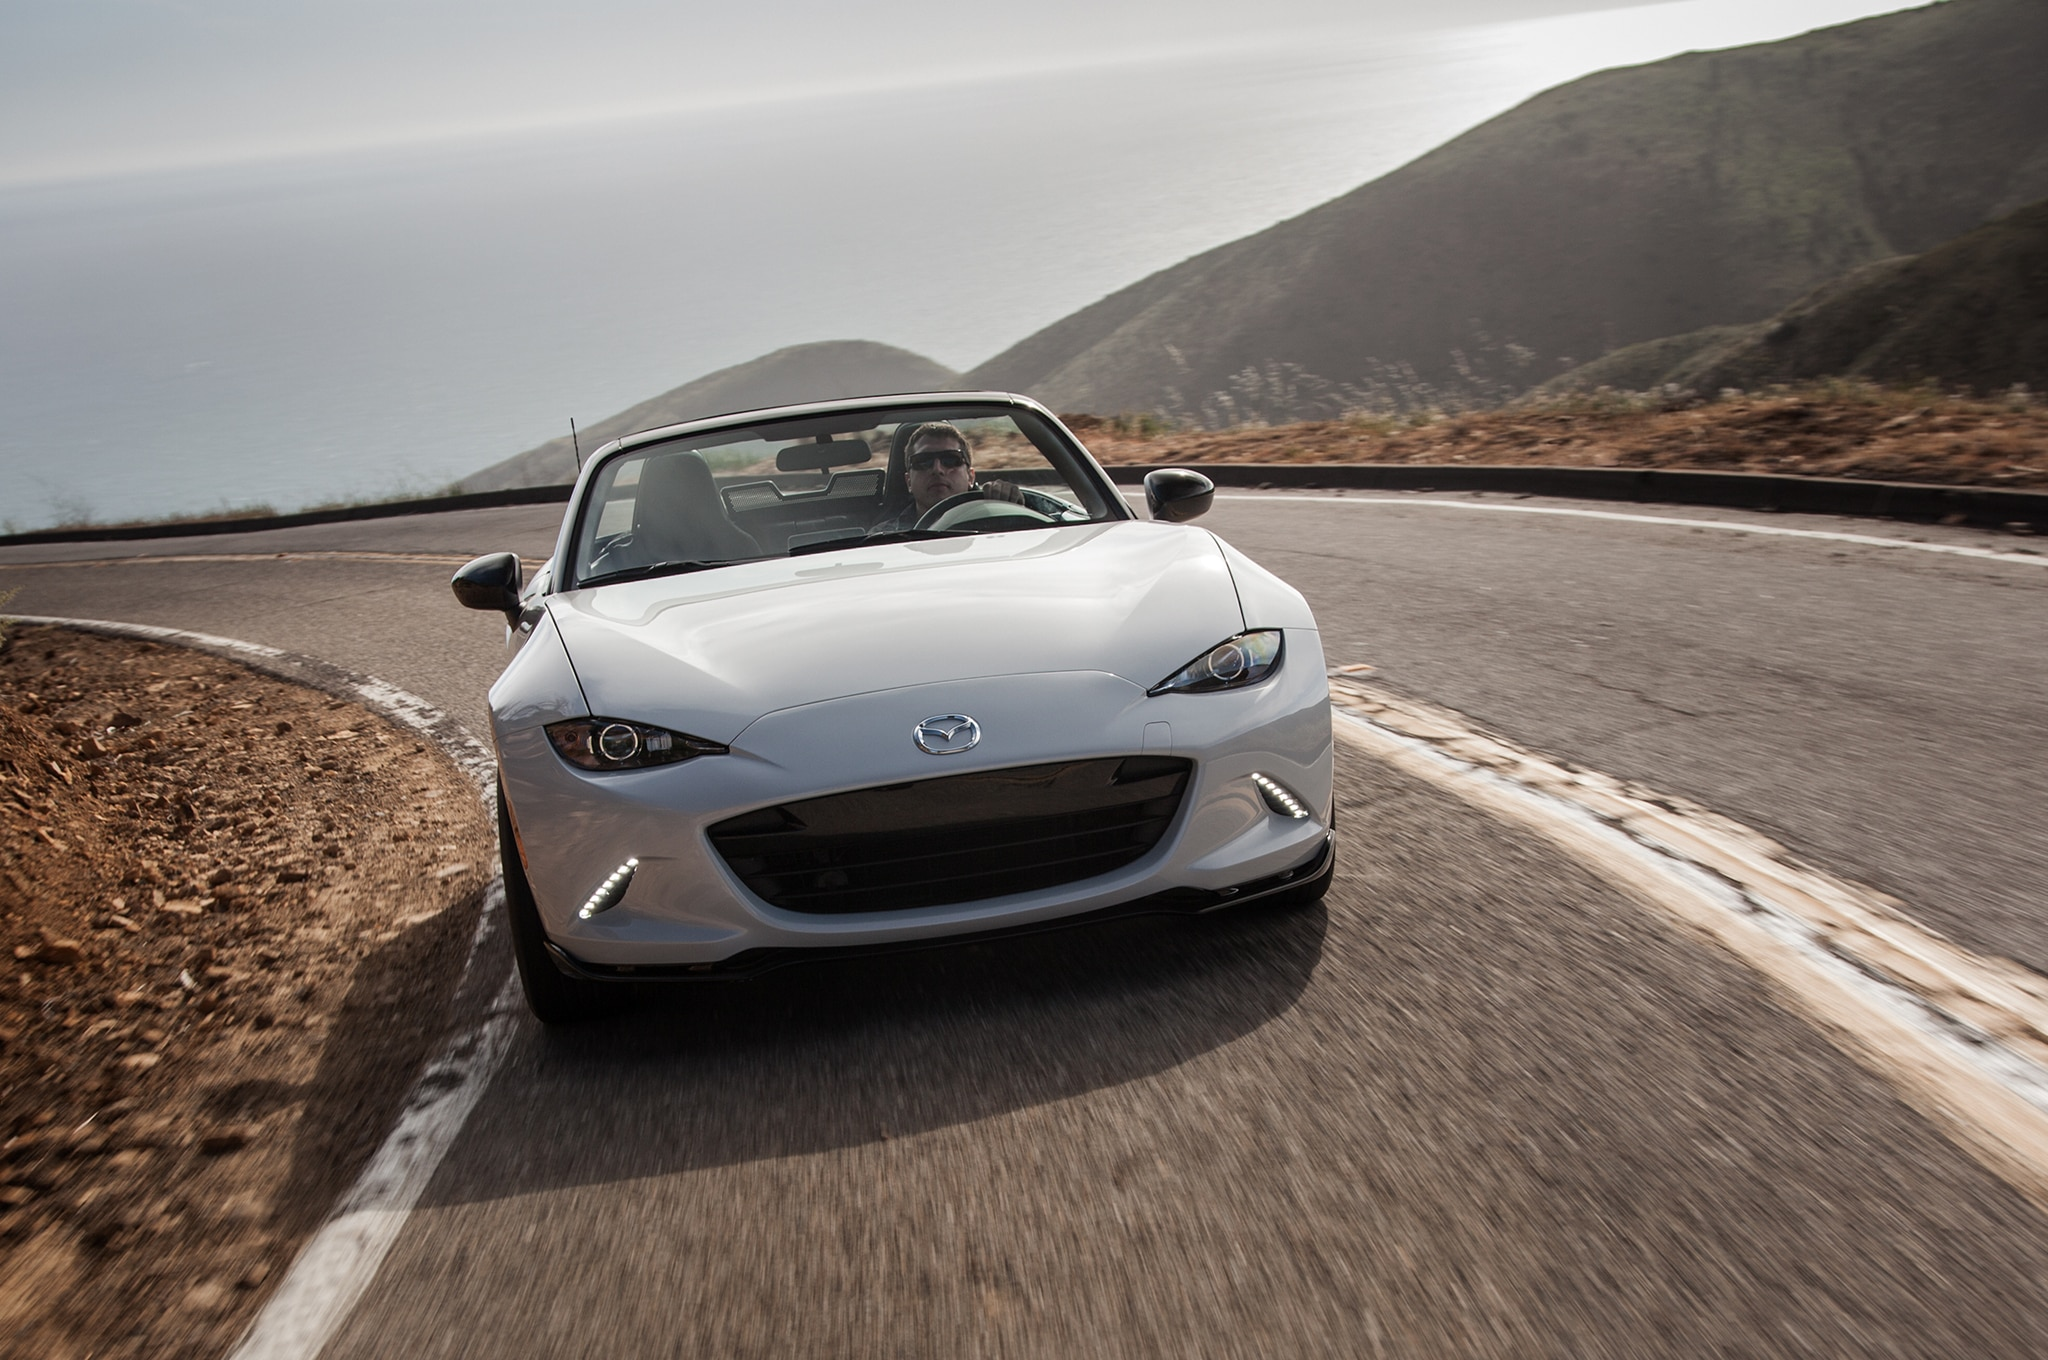 http://st.automobilemag.com/uploads/sites/10/2015/09/2016-Mazda-MX-5-Club-front-view-in-motion-03.jpg